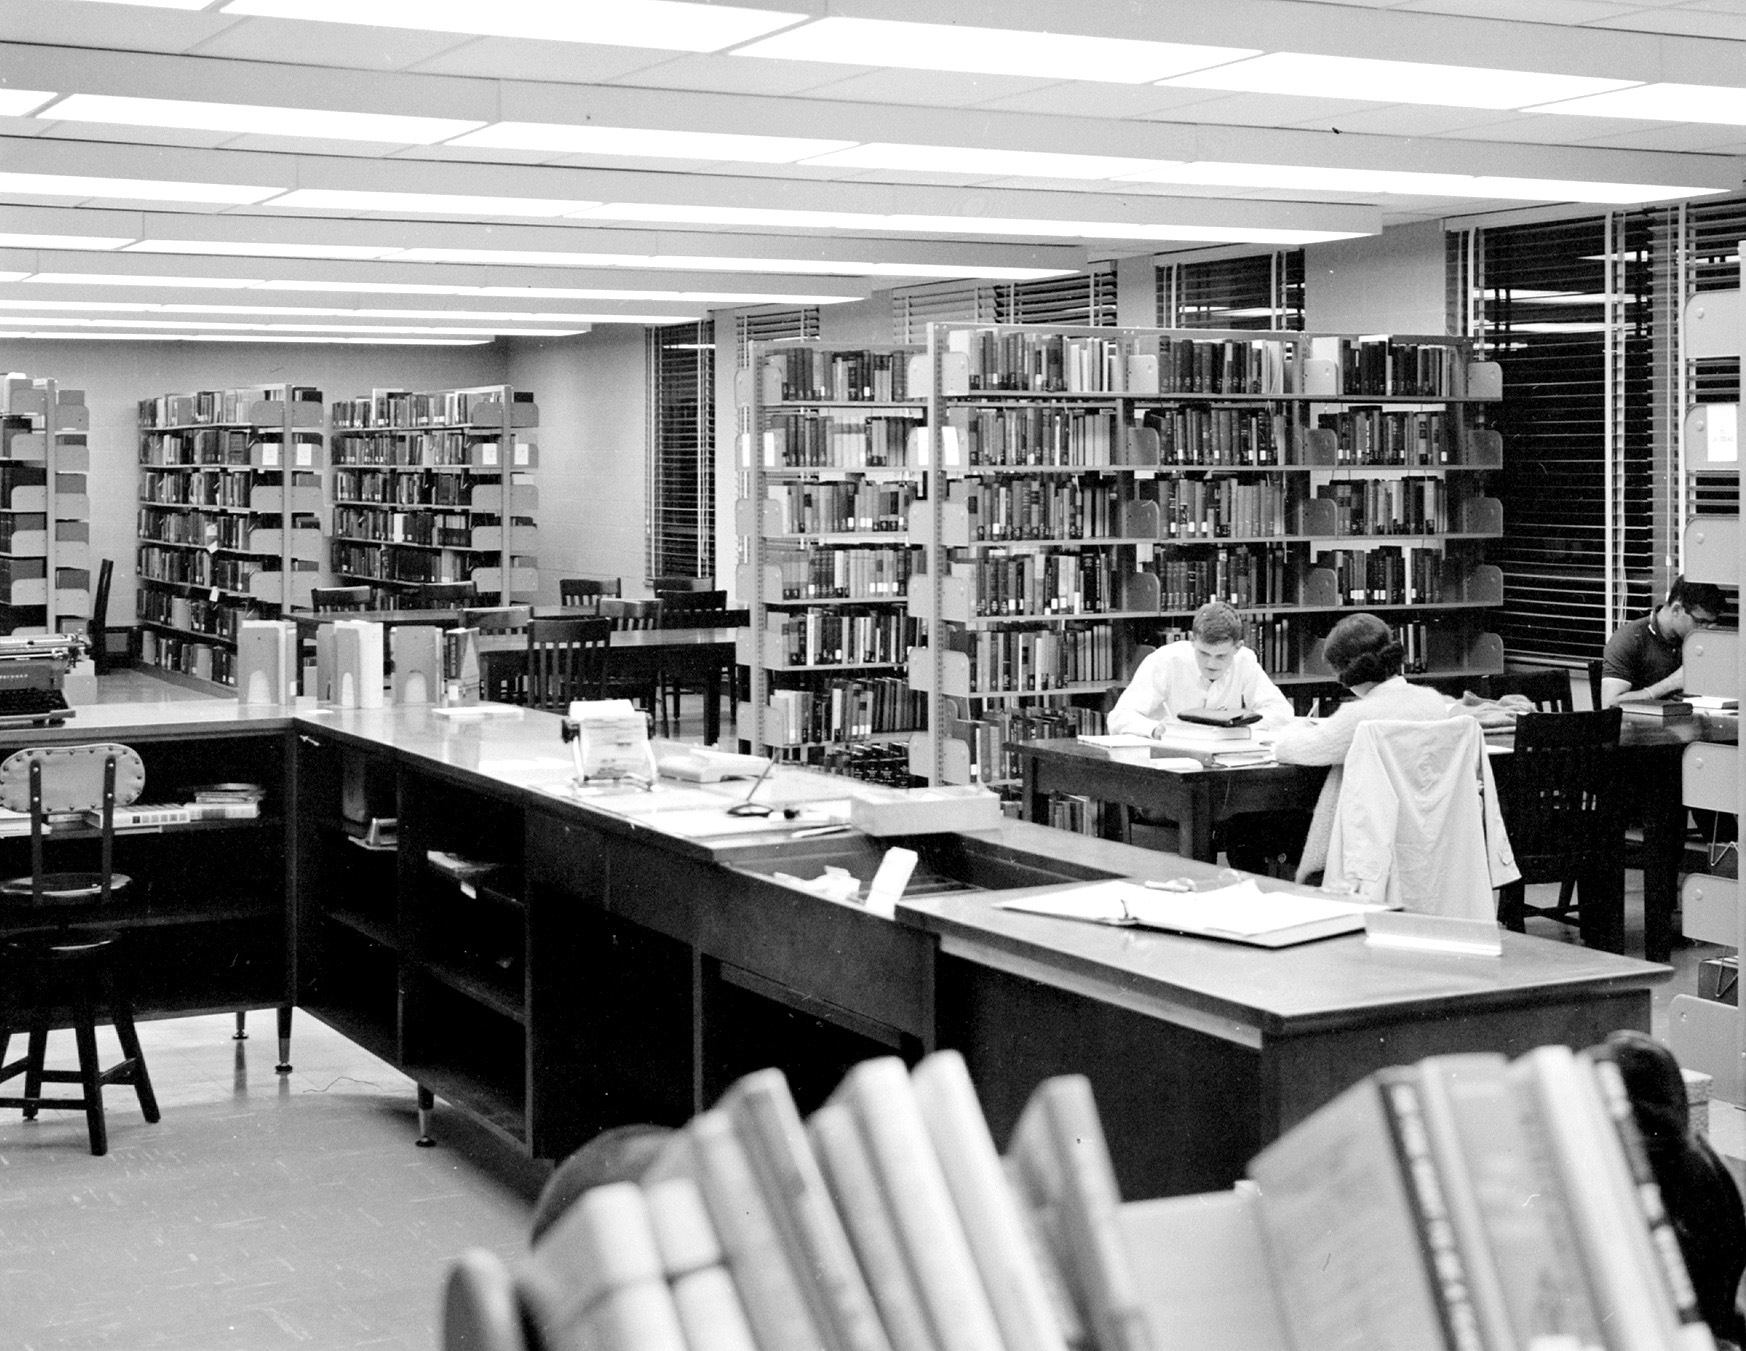 George Mason College Library, East Building, Fairfax campus, October 1965